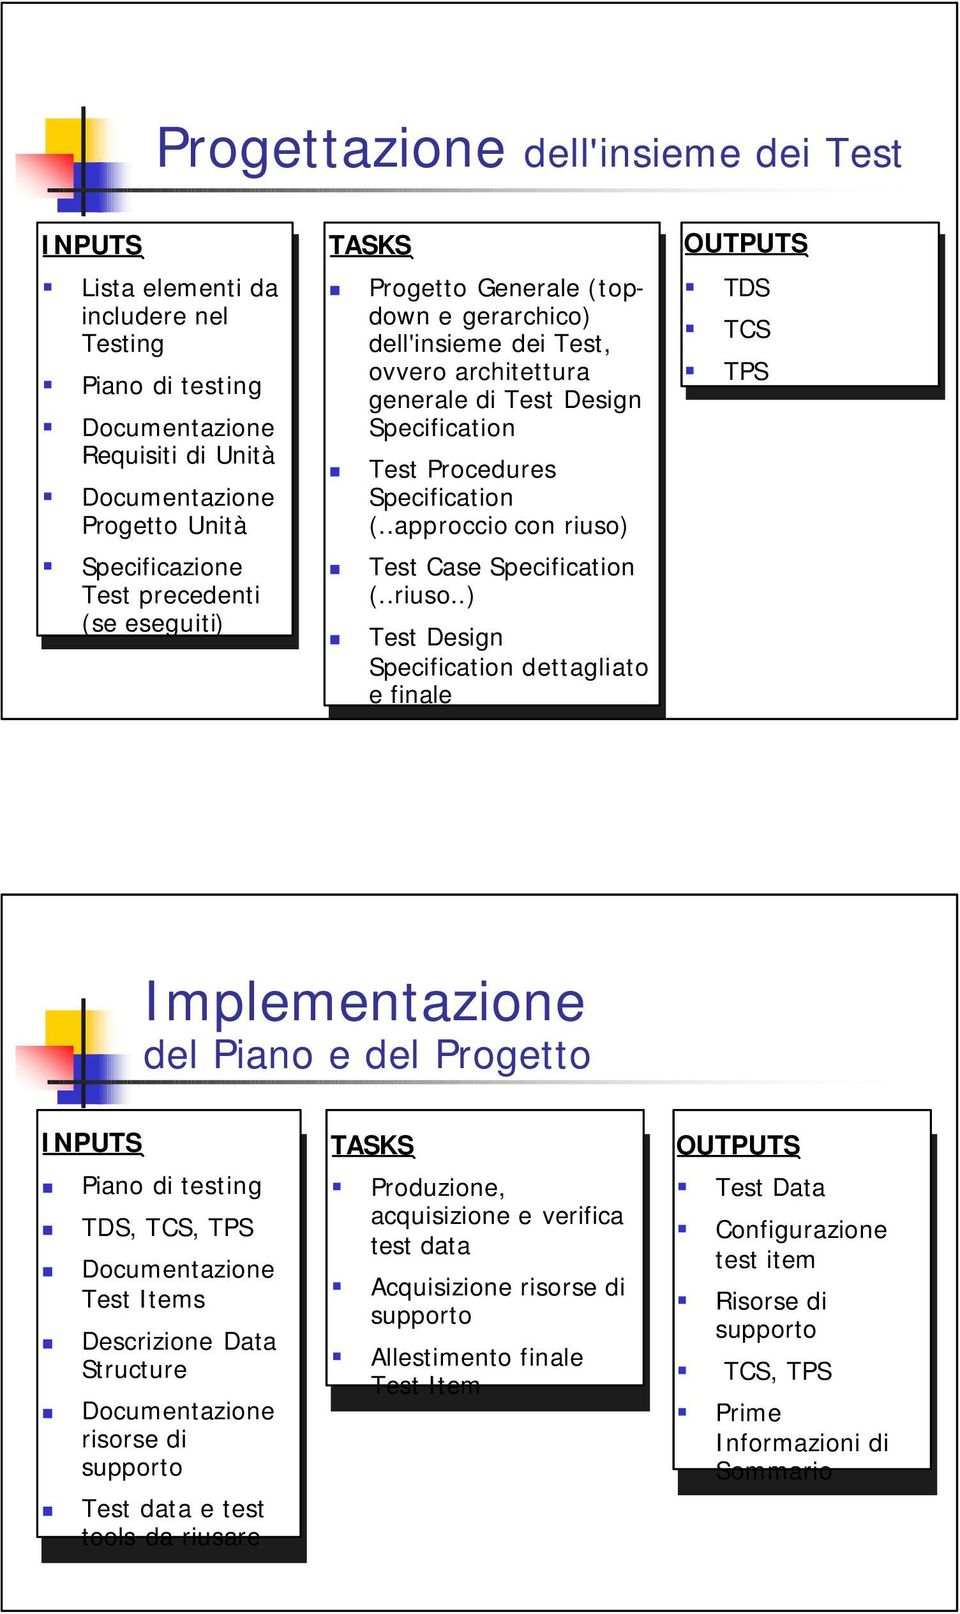 Procedures Specification (..approccio con con riuso)